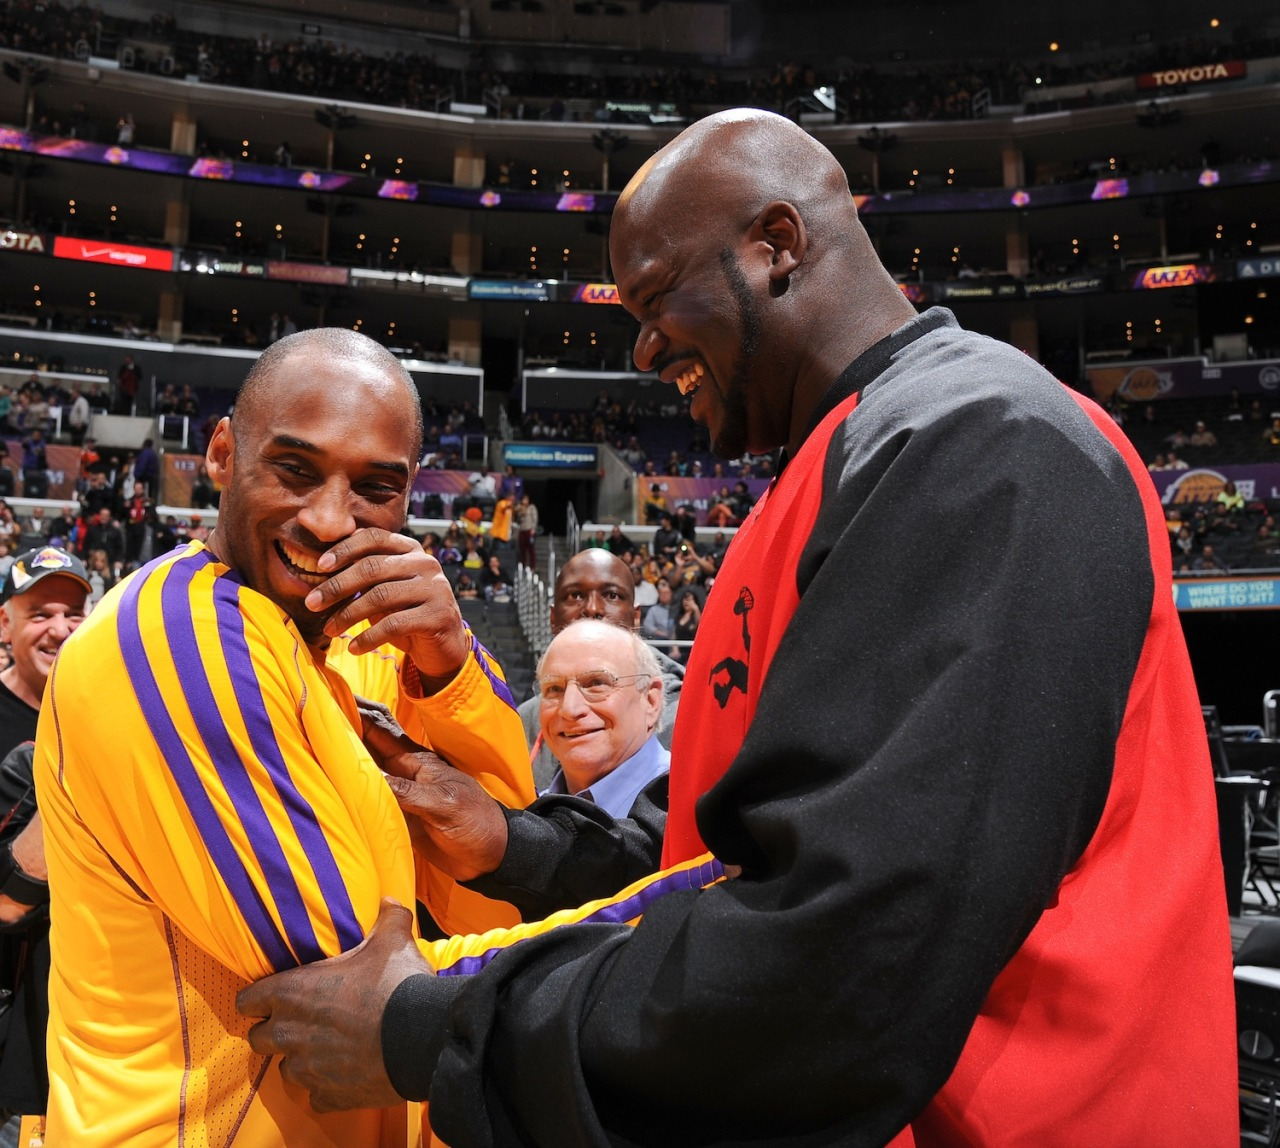 CAPTION THIS PIC: @KobeBryant & @Shaq share a laugh.